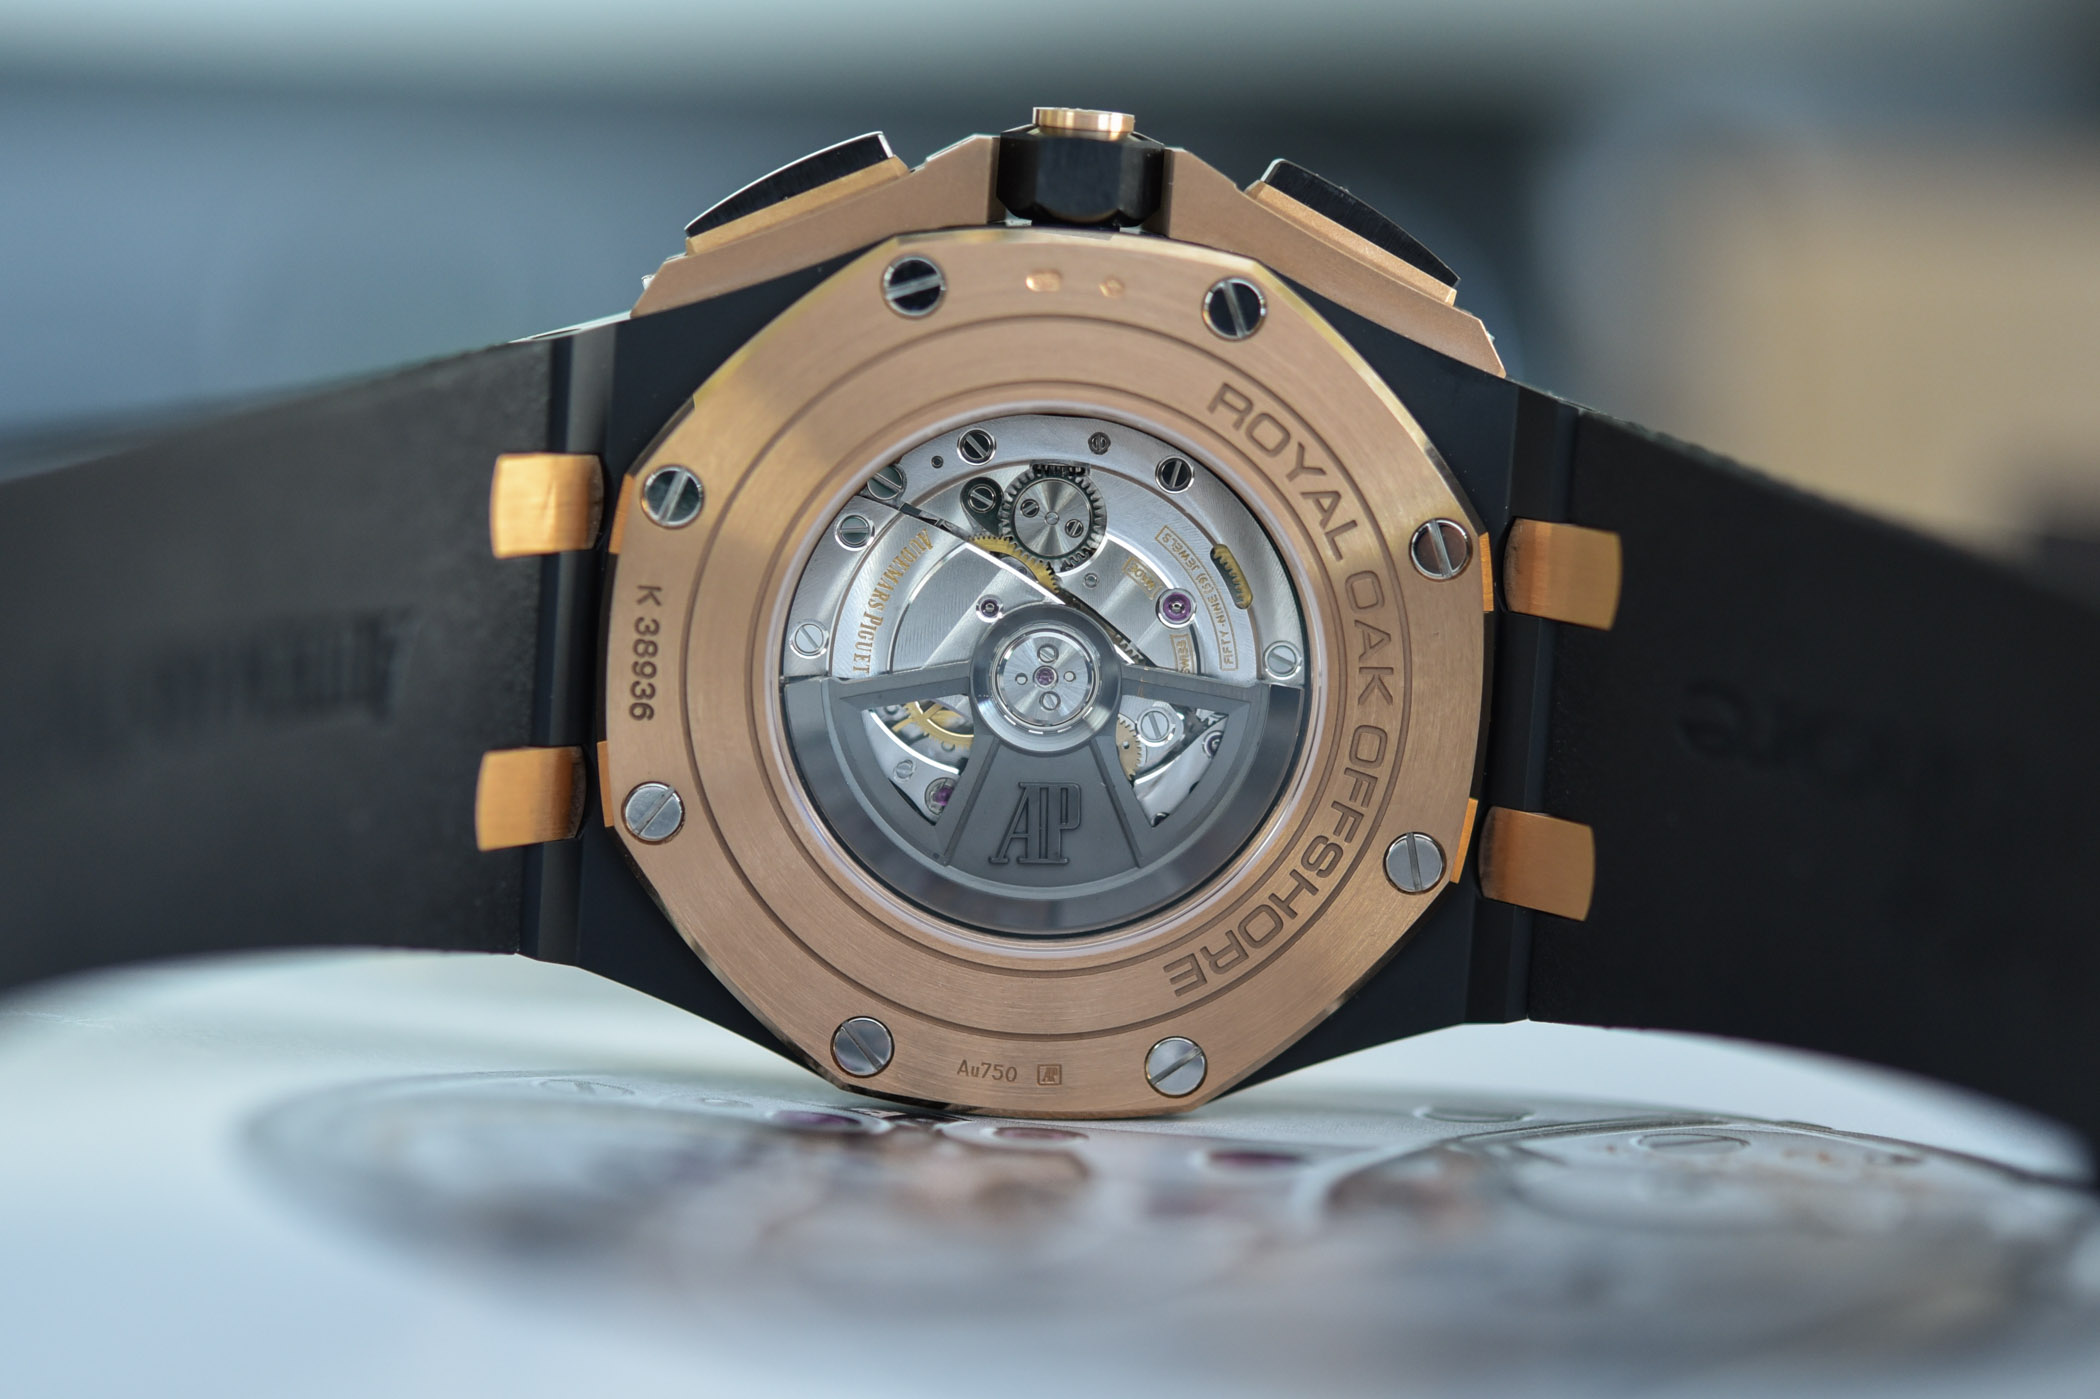 Audemars Piguet Royal Oak Offshore Selfwinding Chronograph 44mm 2020 Smoked Dial - 26405NR.OO.A002CA.01